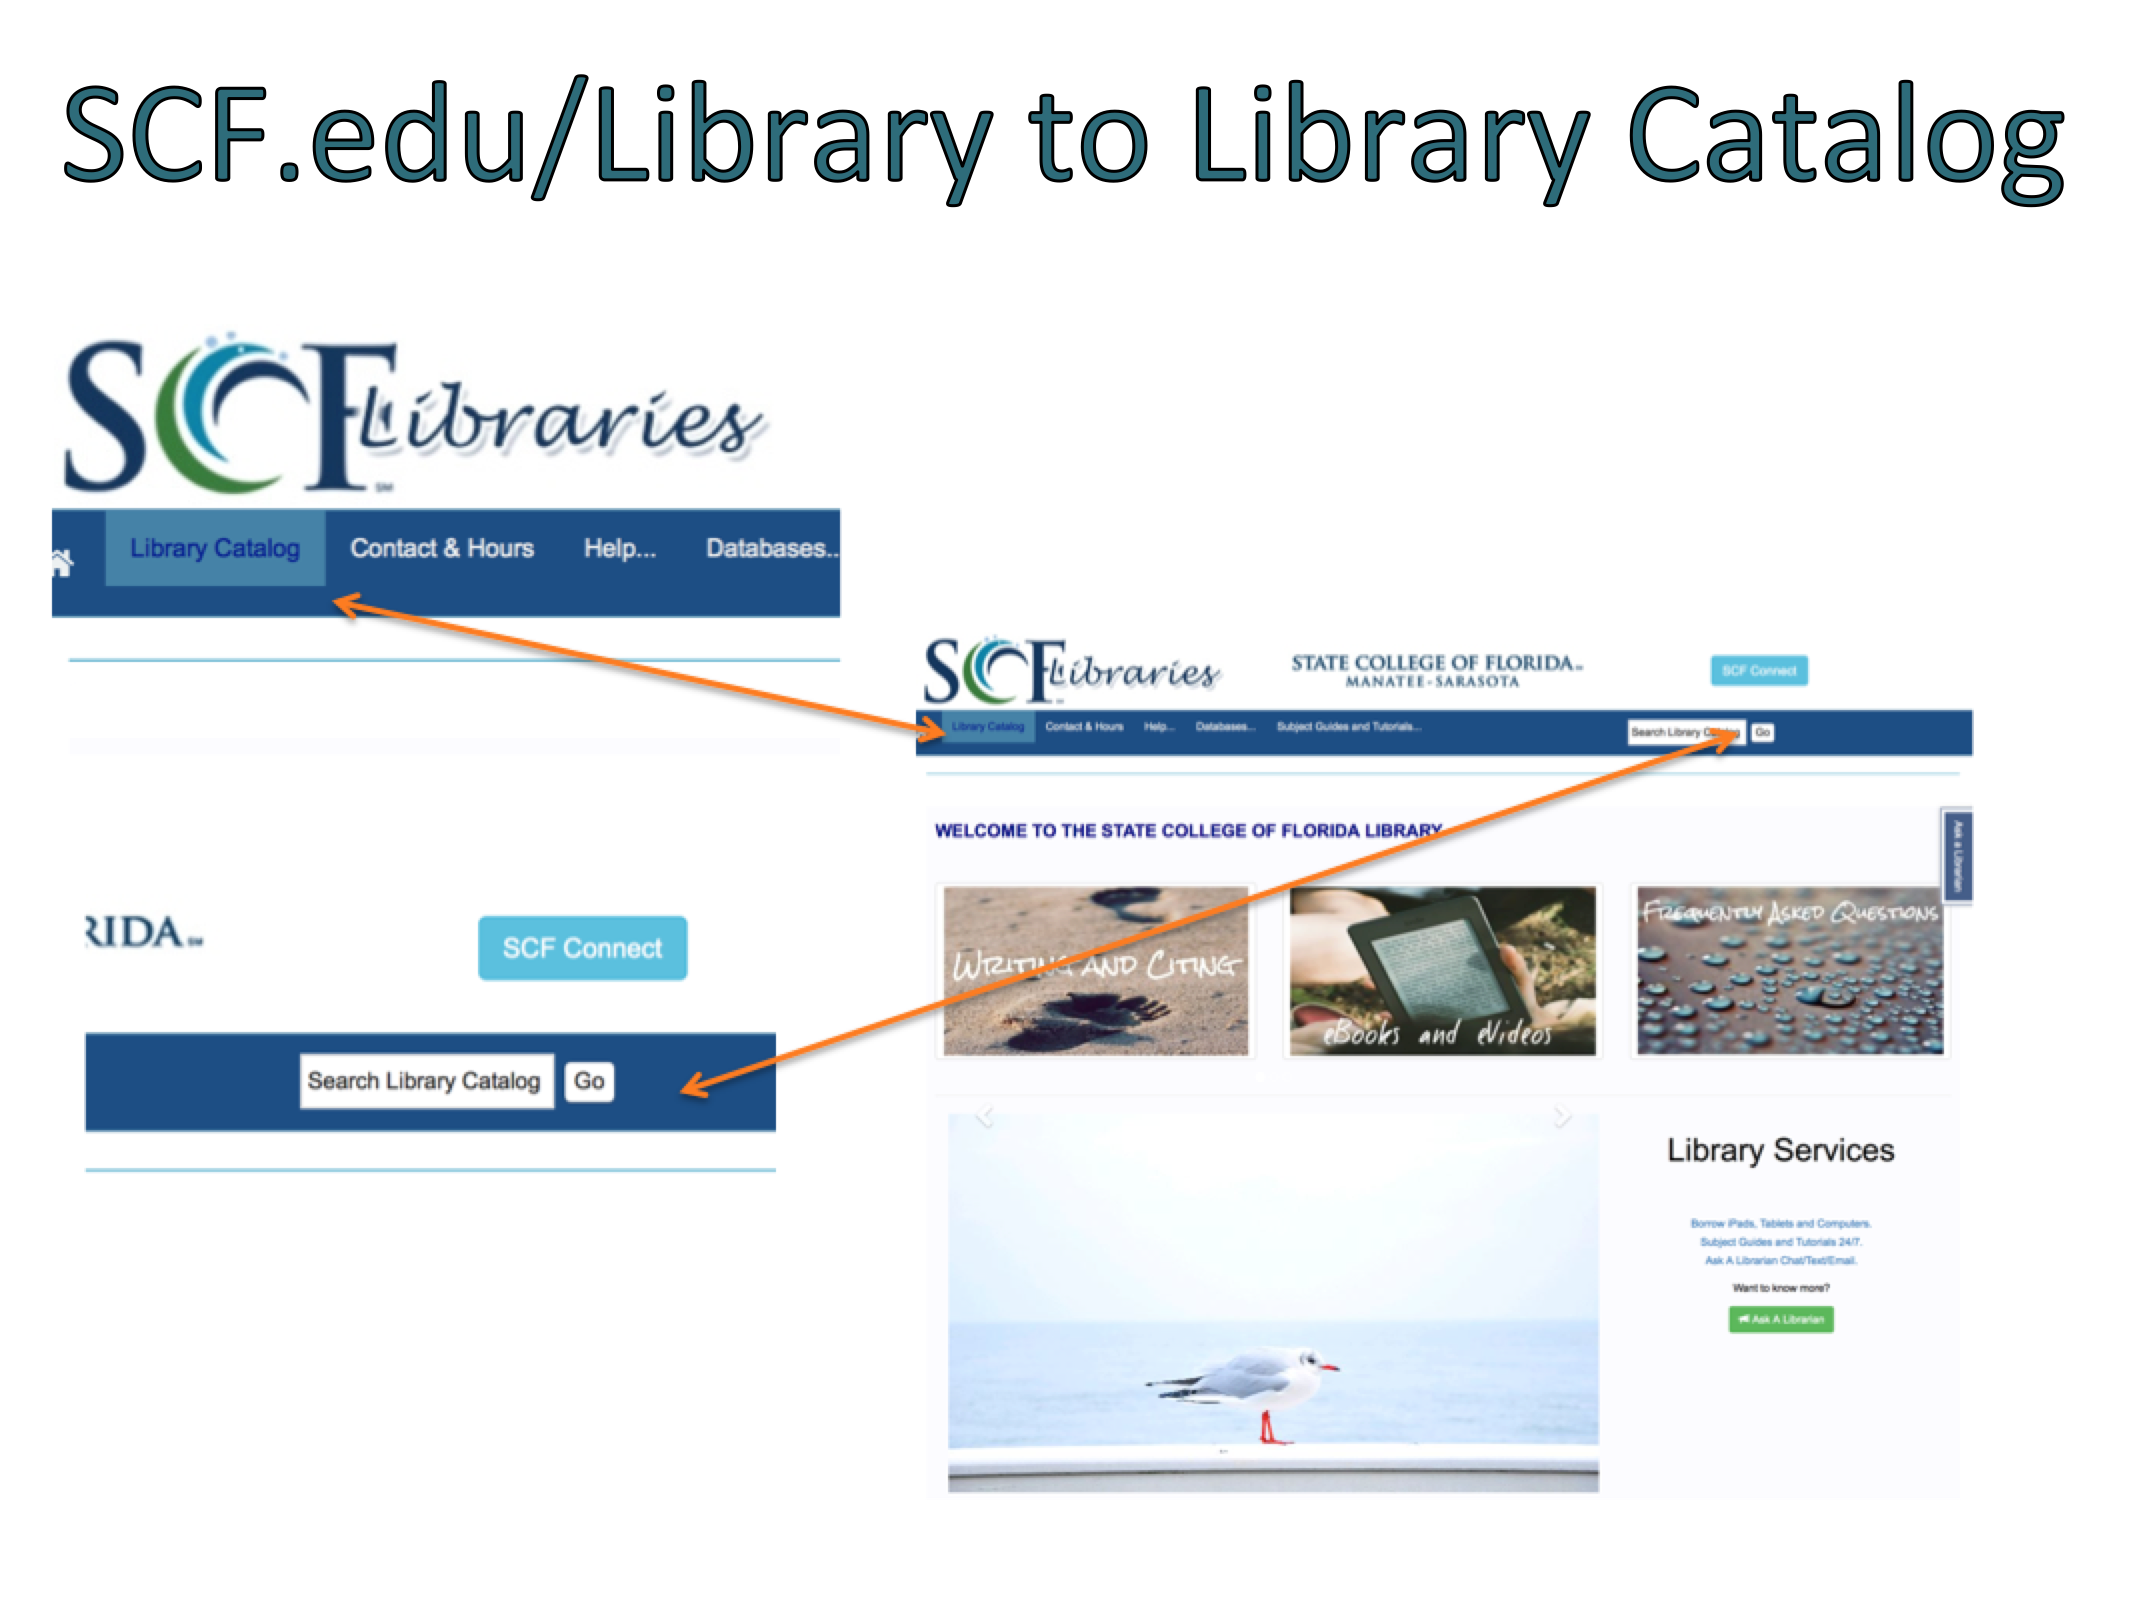 Select Library Catalog from Scf.edu/library